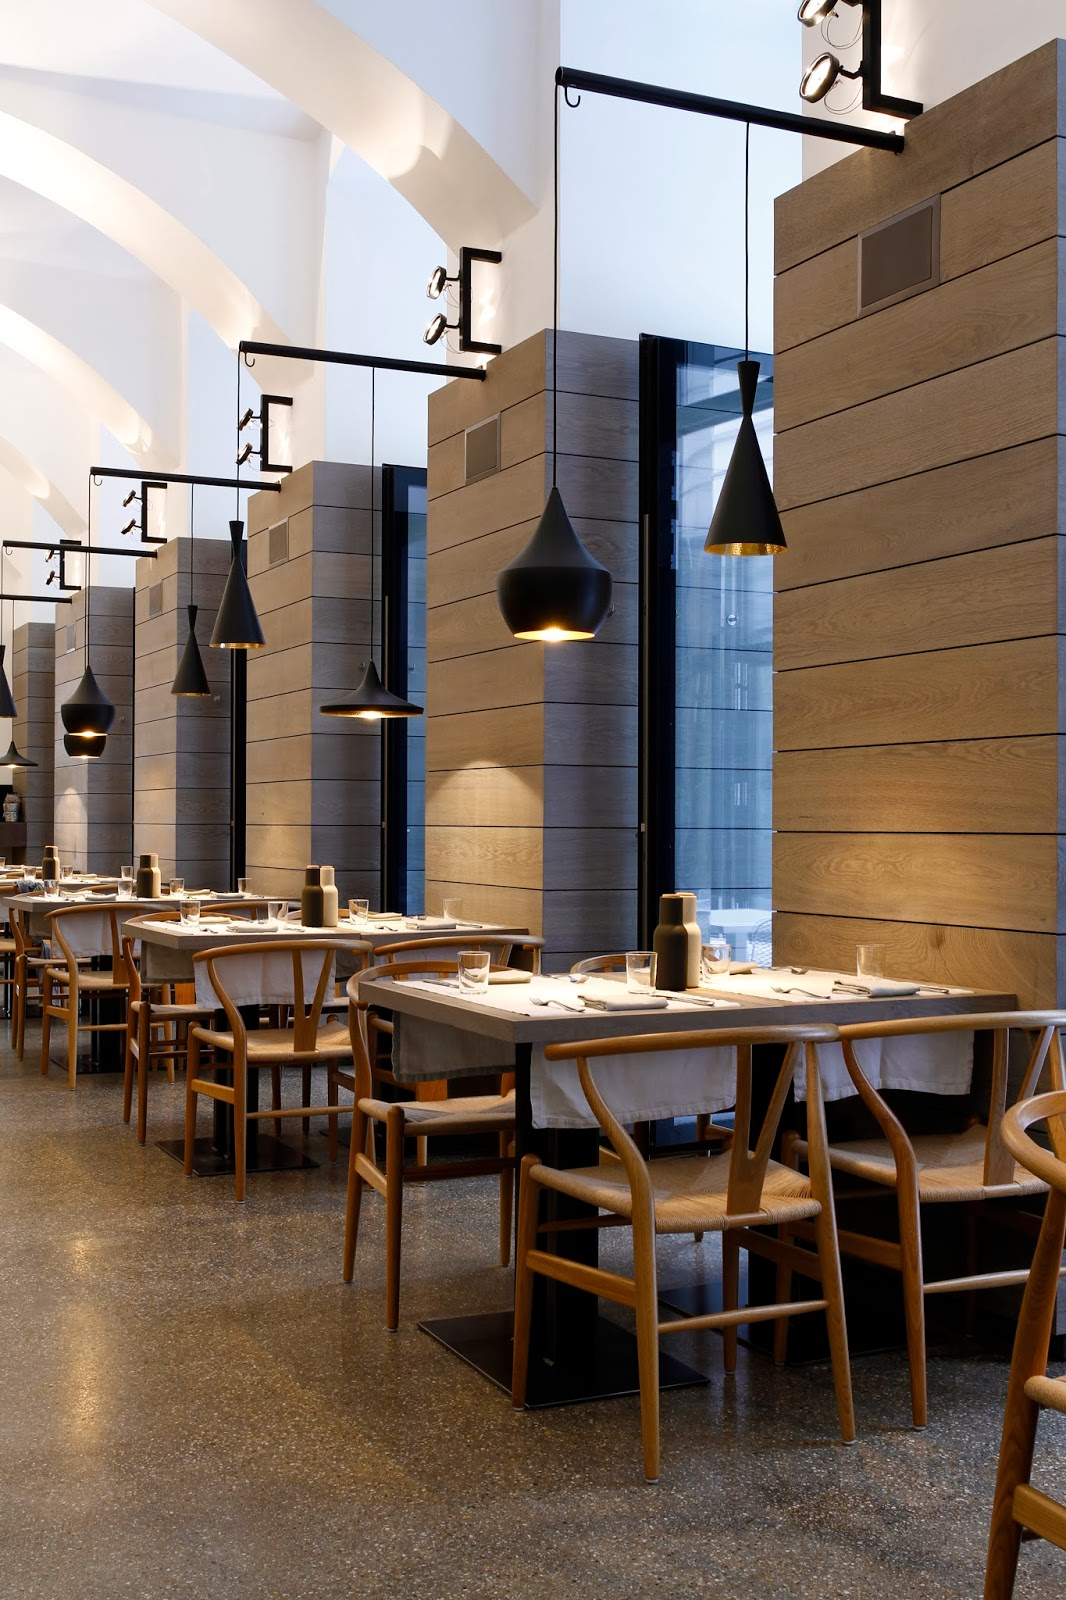 Rainer wallmann commercial interior design restaurant